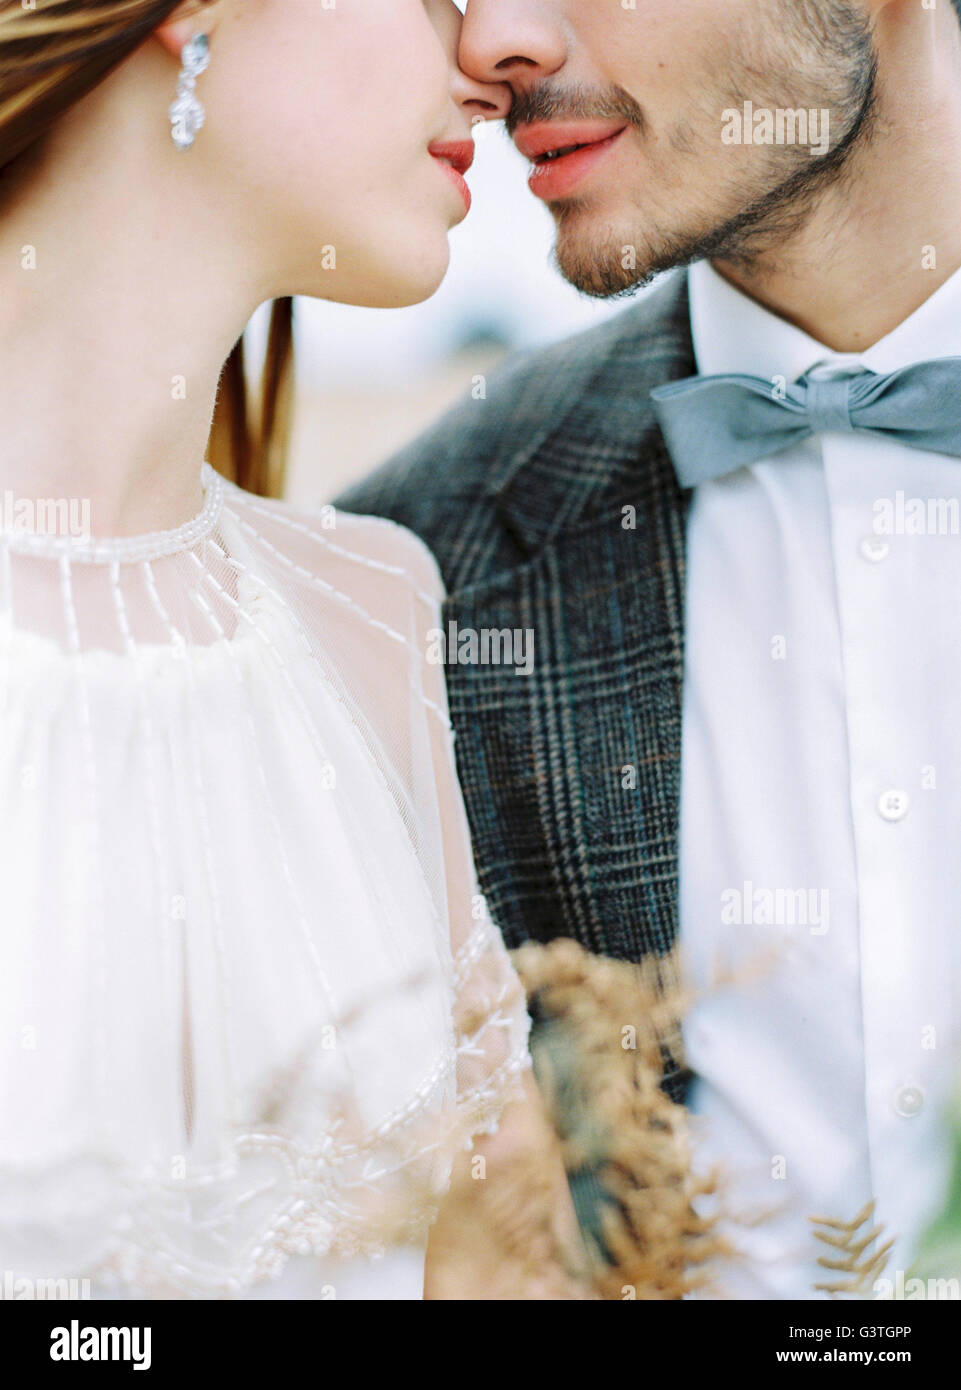 Sweden, Halland, Varberg, Bride and groom face to face Stock Photo